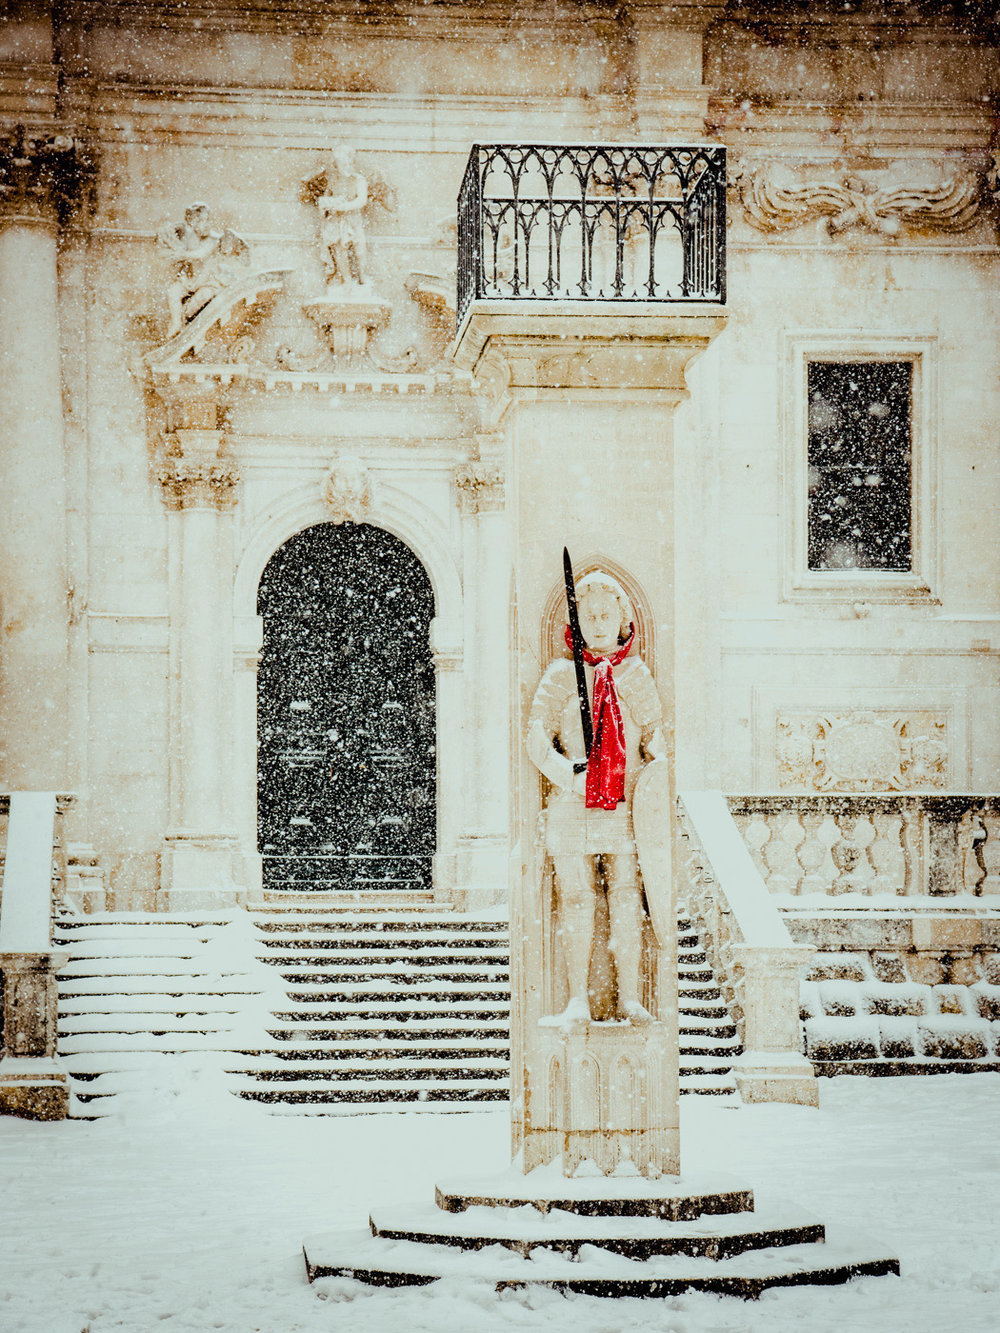 A statue covered in snow in Dubrovnik, Croatia.